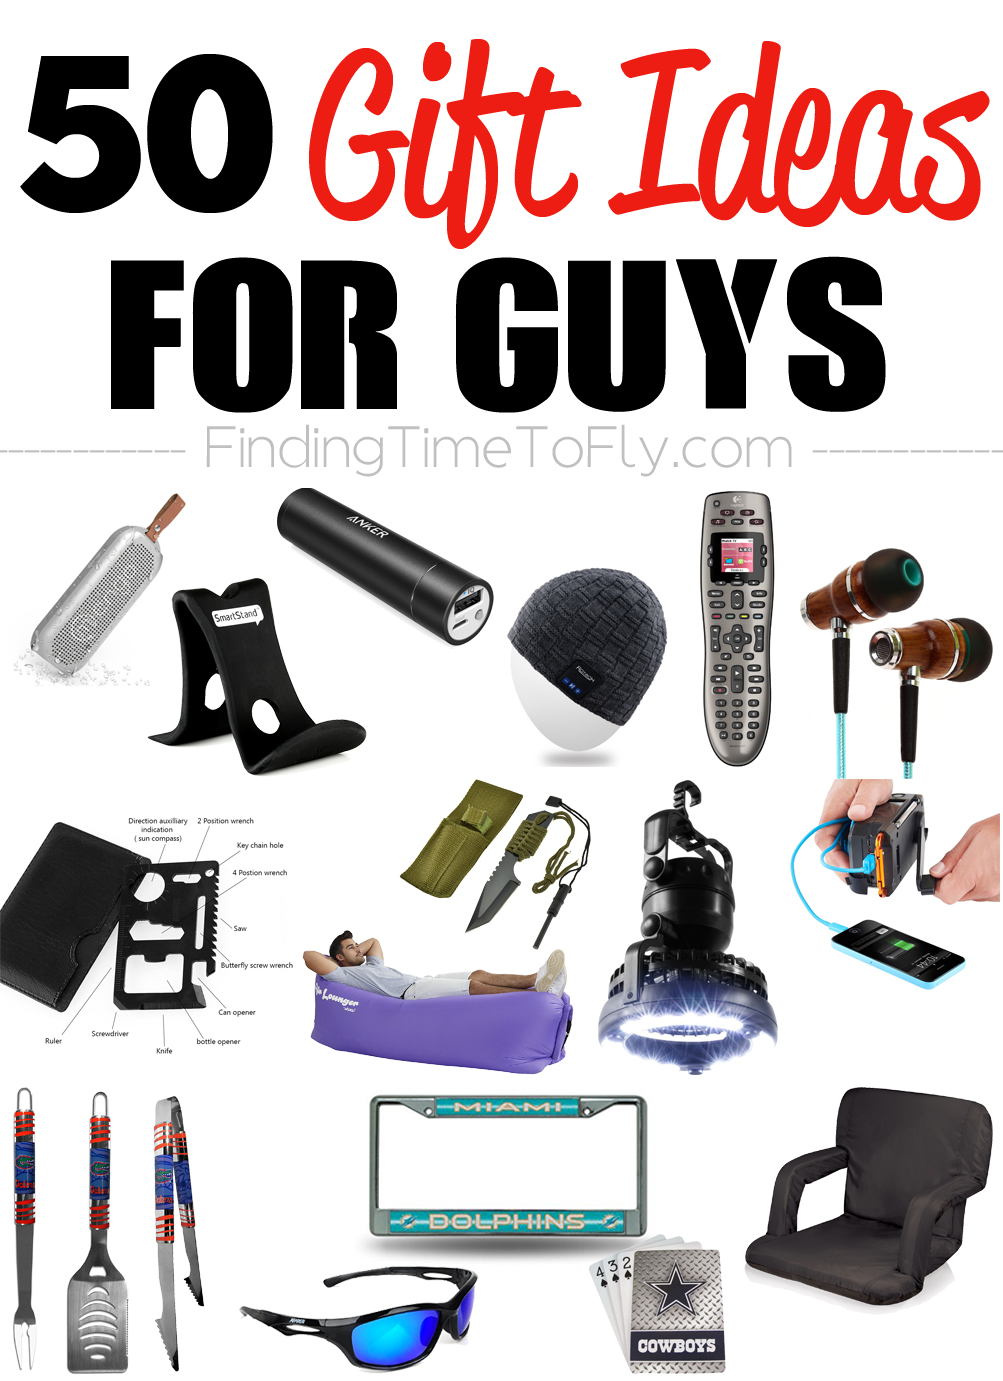 50 Gifts for Guys for Every Occasion - Finding Time To Fly